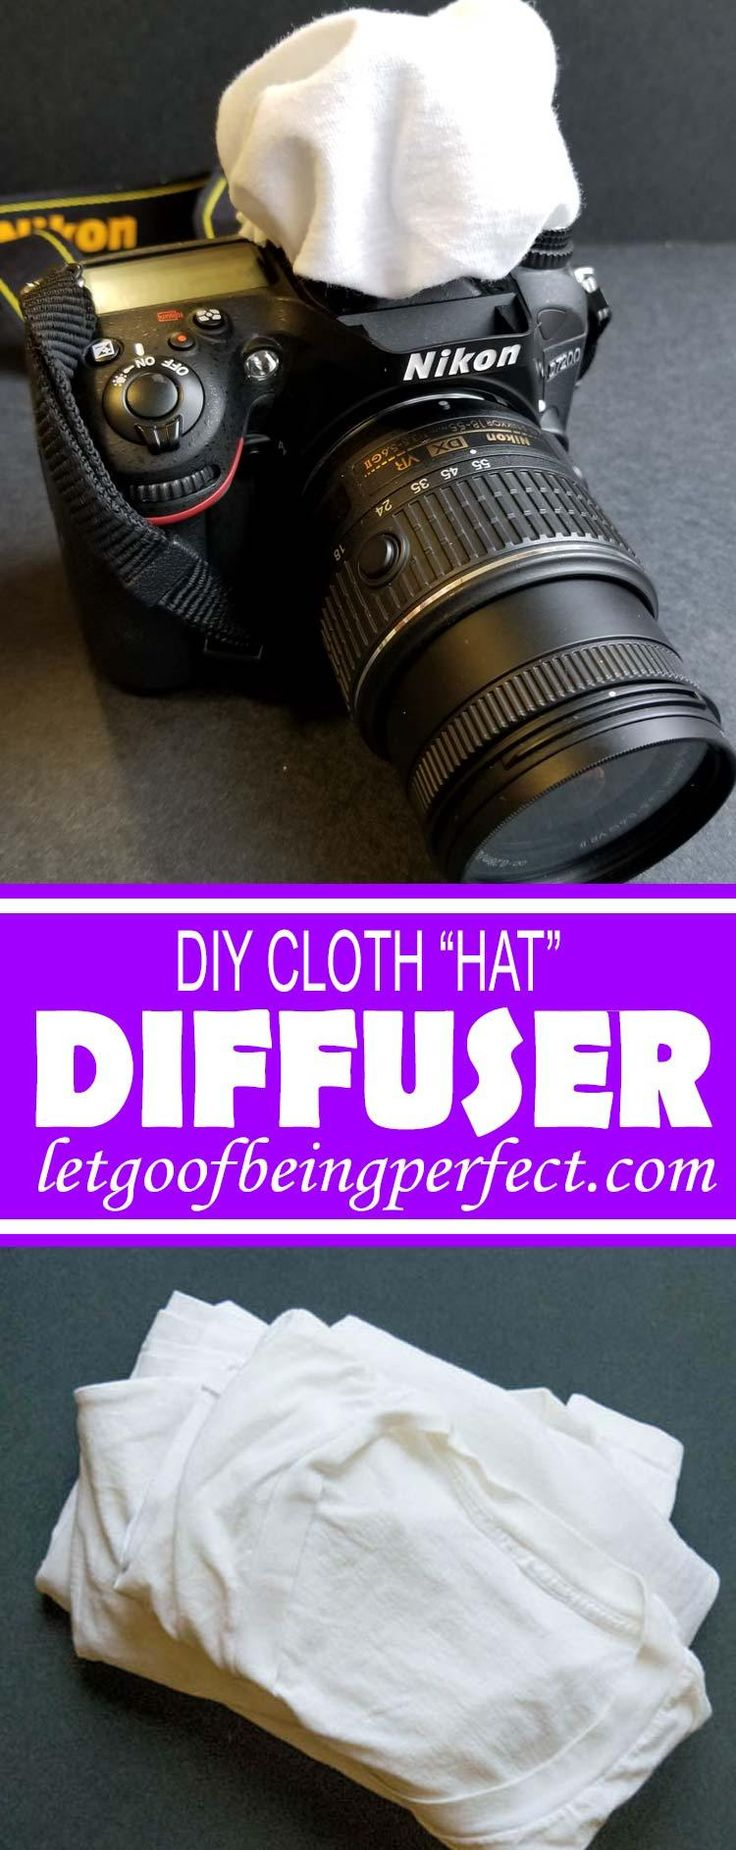 DIY Cloth Hat Diffuser - This simple photography tutorial will teach you how to make a simple cloth diffuser to put over your dSLR flash. Learn tips for your blog photography. Photoshop, Lightroom, and Elements ideas to modify and fix up your pictures and images. Explore the web site for more step-by-step tutorials, especially upcycling and refashioning how-tos. Also check out my blogging & photograph tips! http://letgoofbeingperfect.com